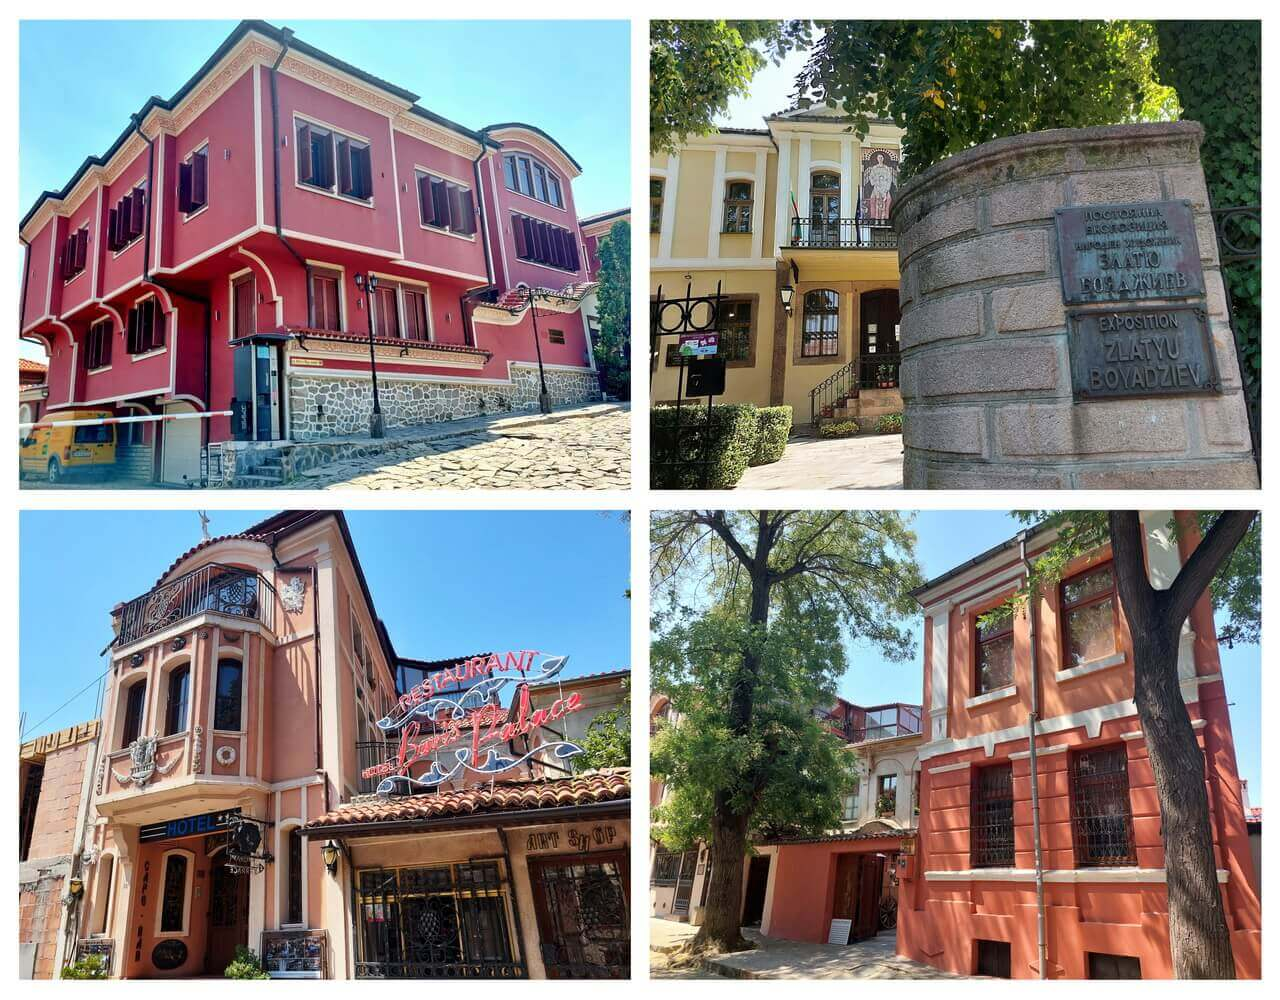 Colourful houses in the Old Town of Plovdiv